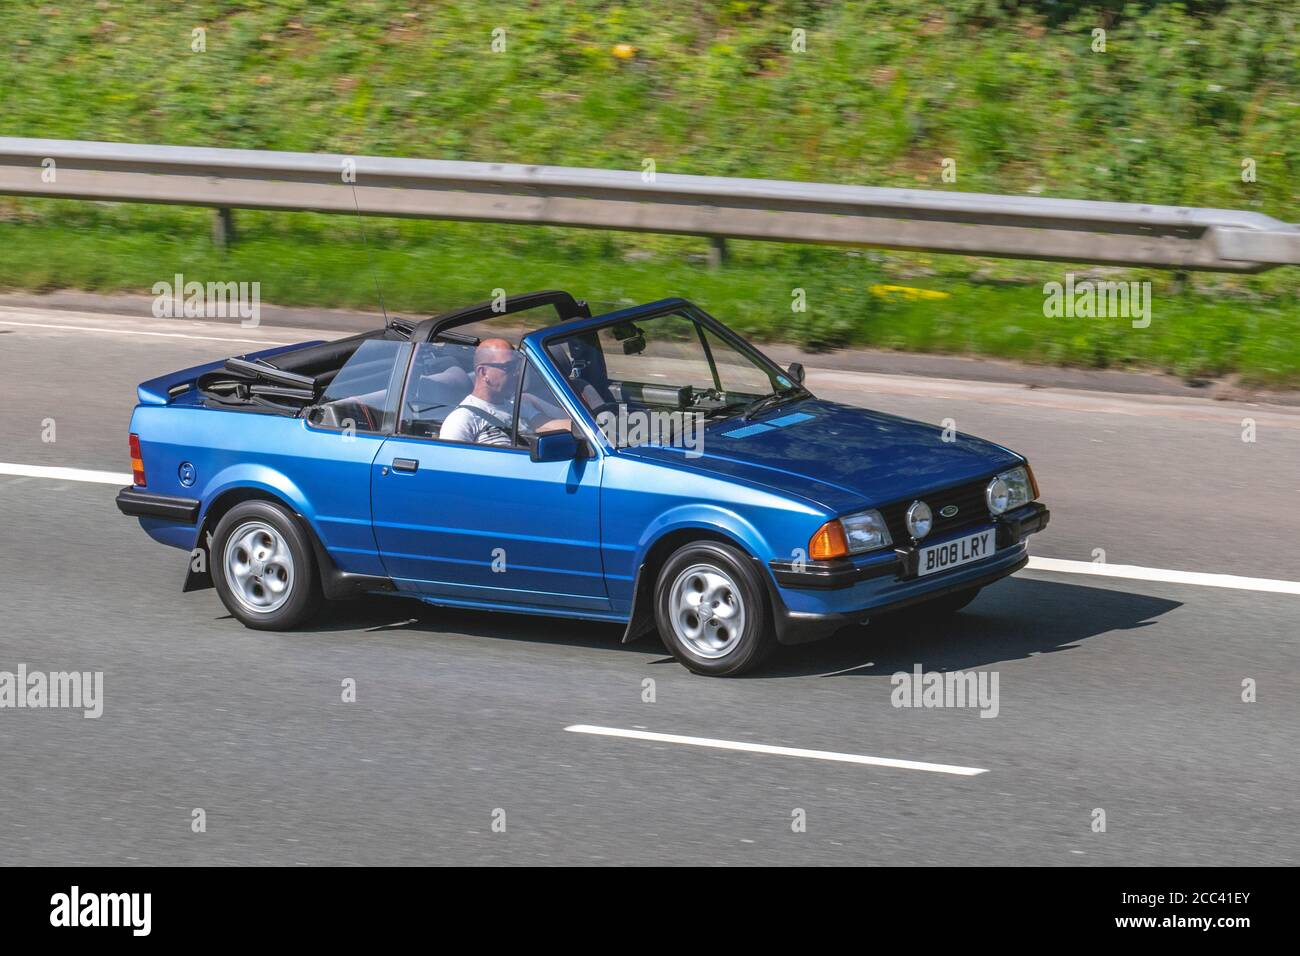 Blue Ford Escort High Resolution Stock Photography And Images Alamy